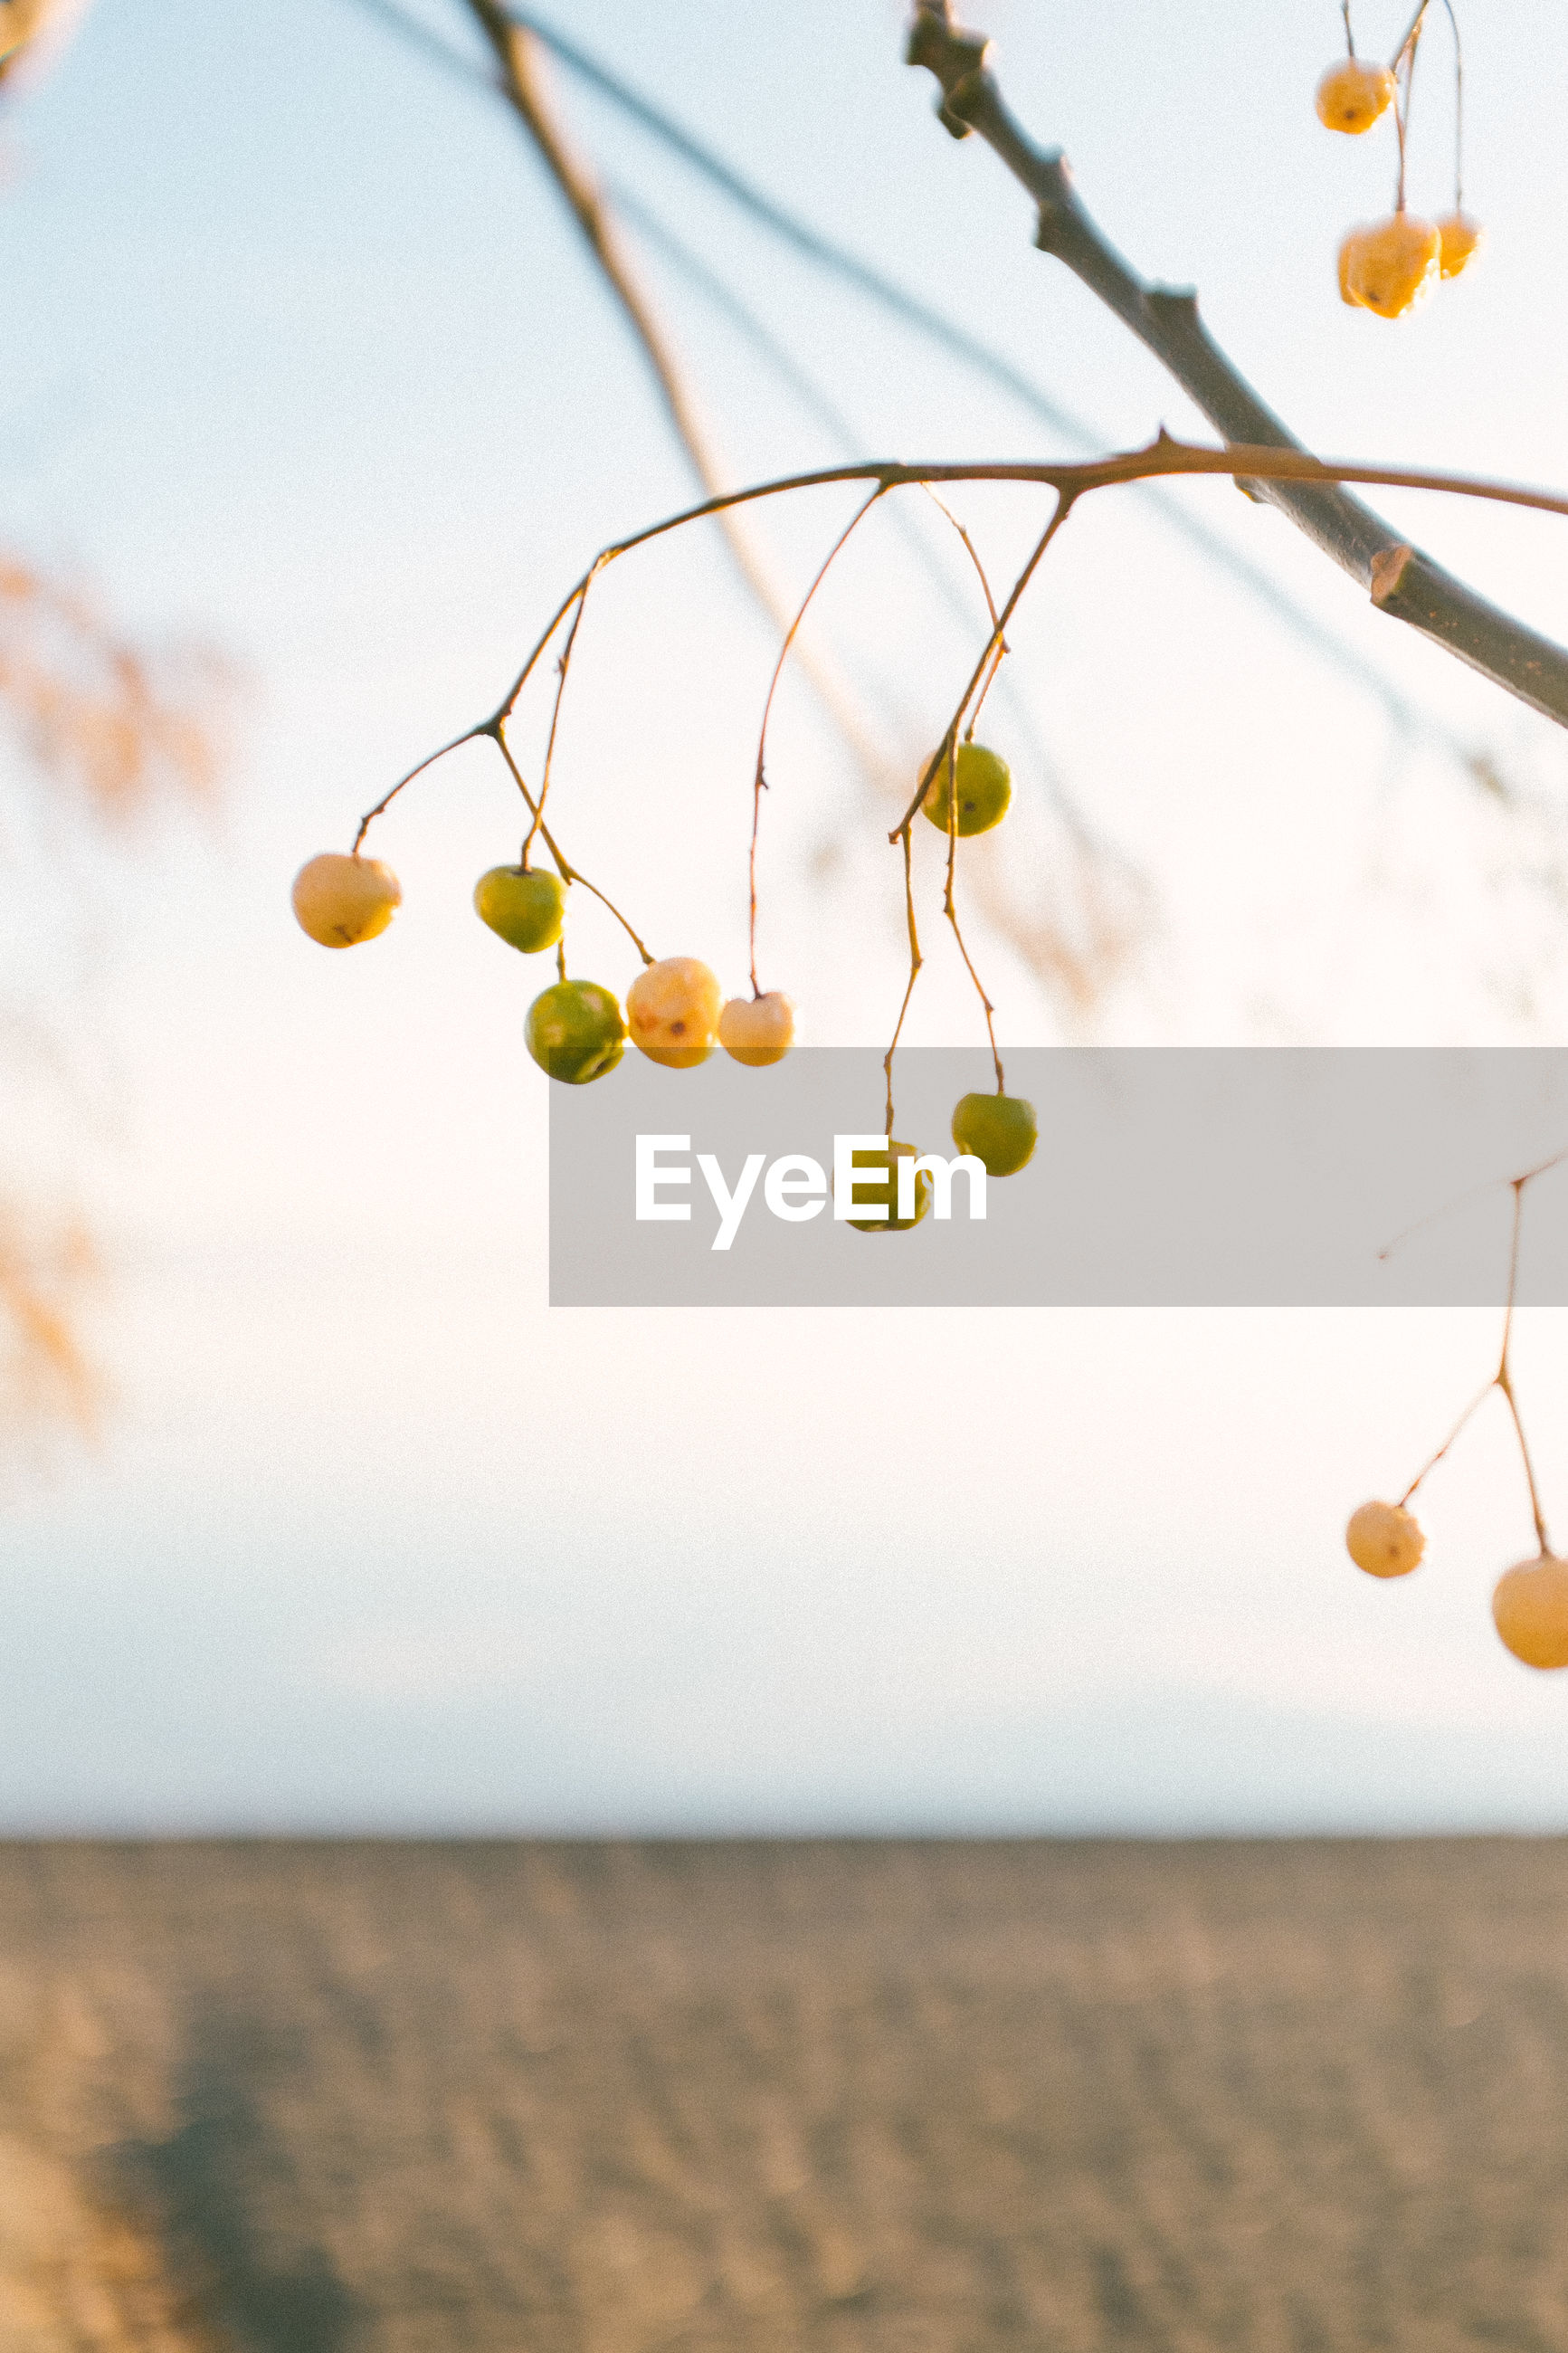 Low angle view of fruits hanging from twigs against sky